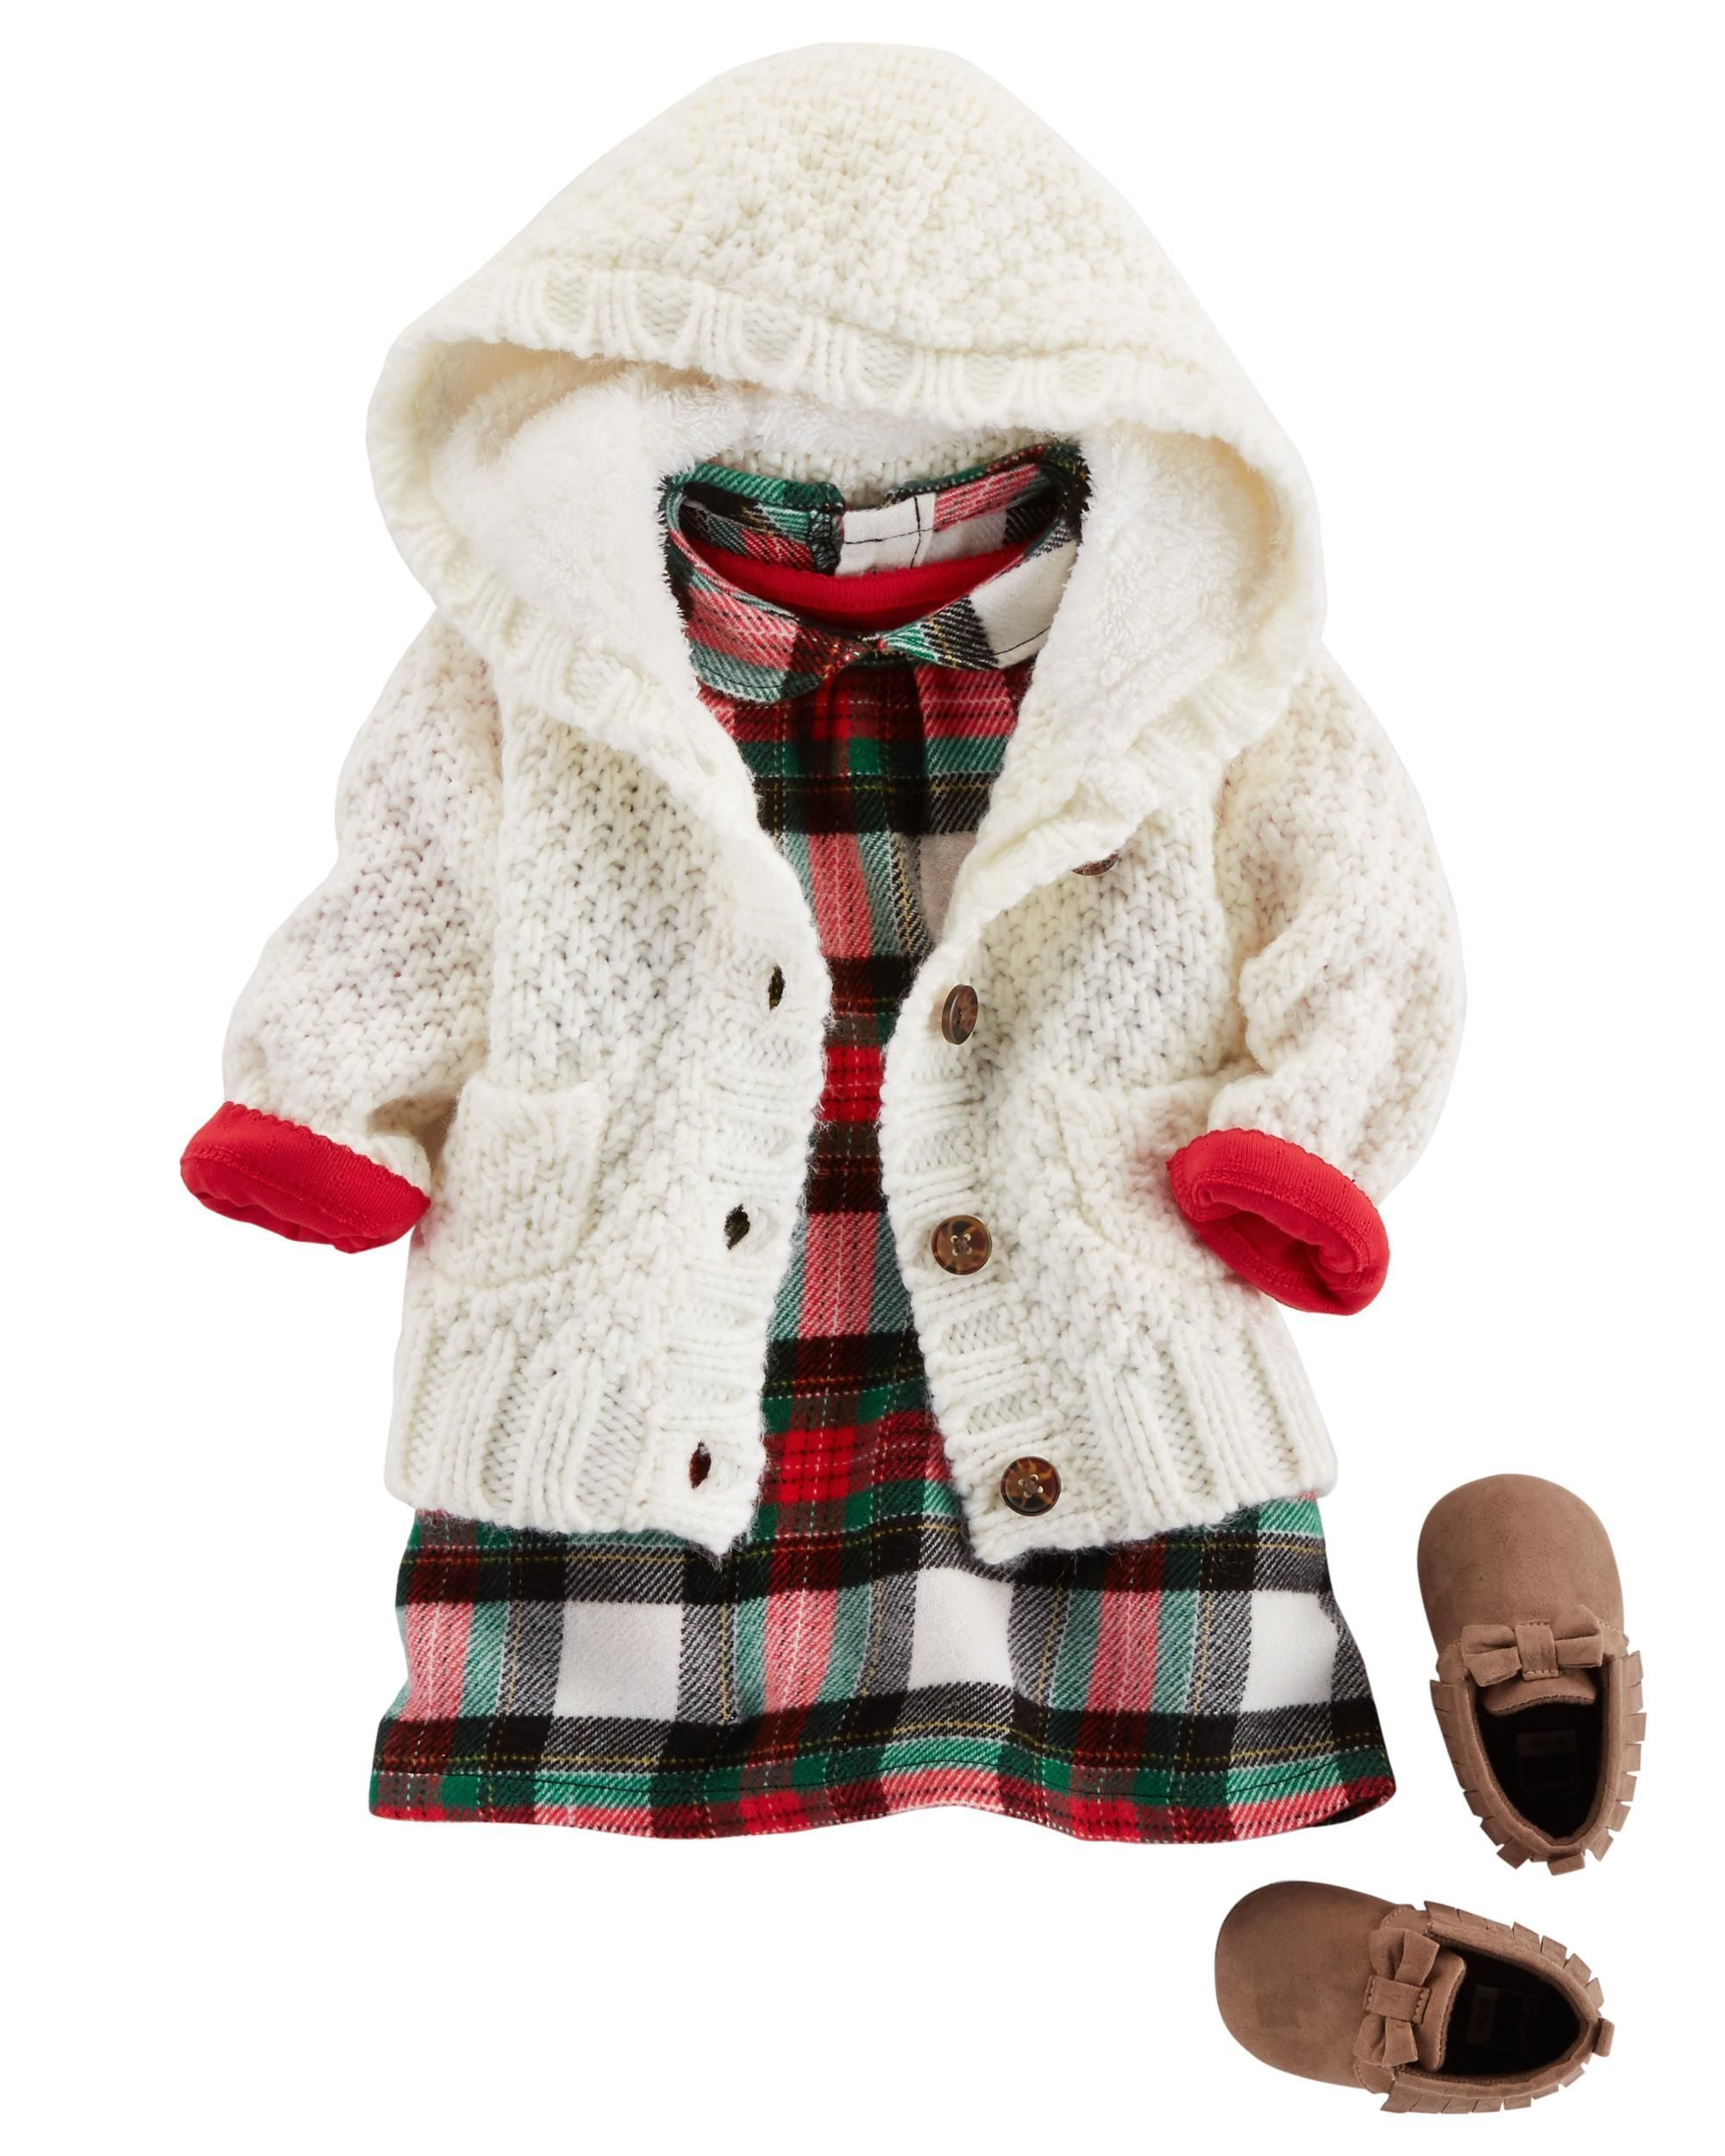 Flannel jacket with wool lining  A quick and easy holiday outfit this soft cotton bodysuit pairs